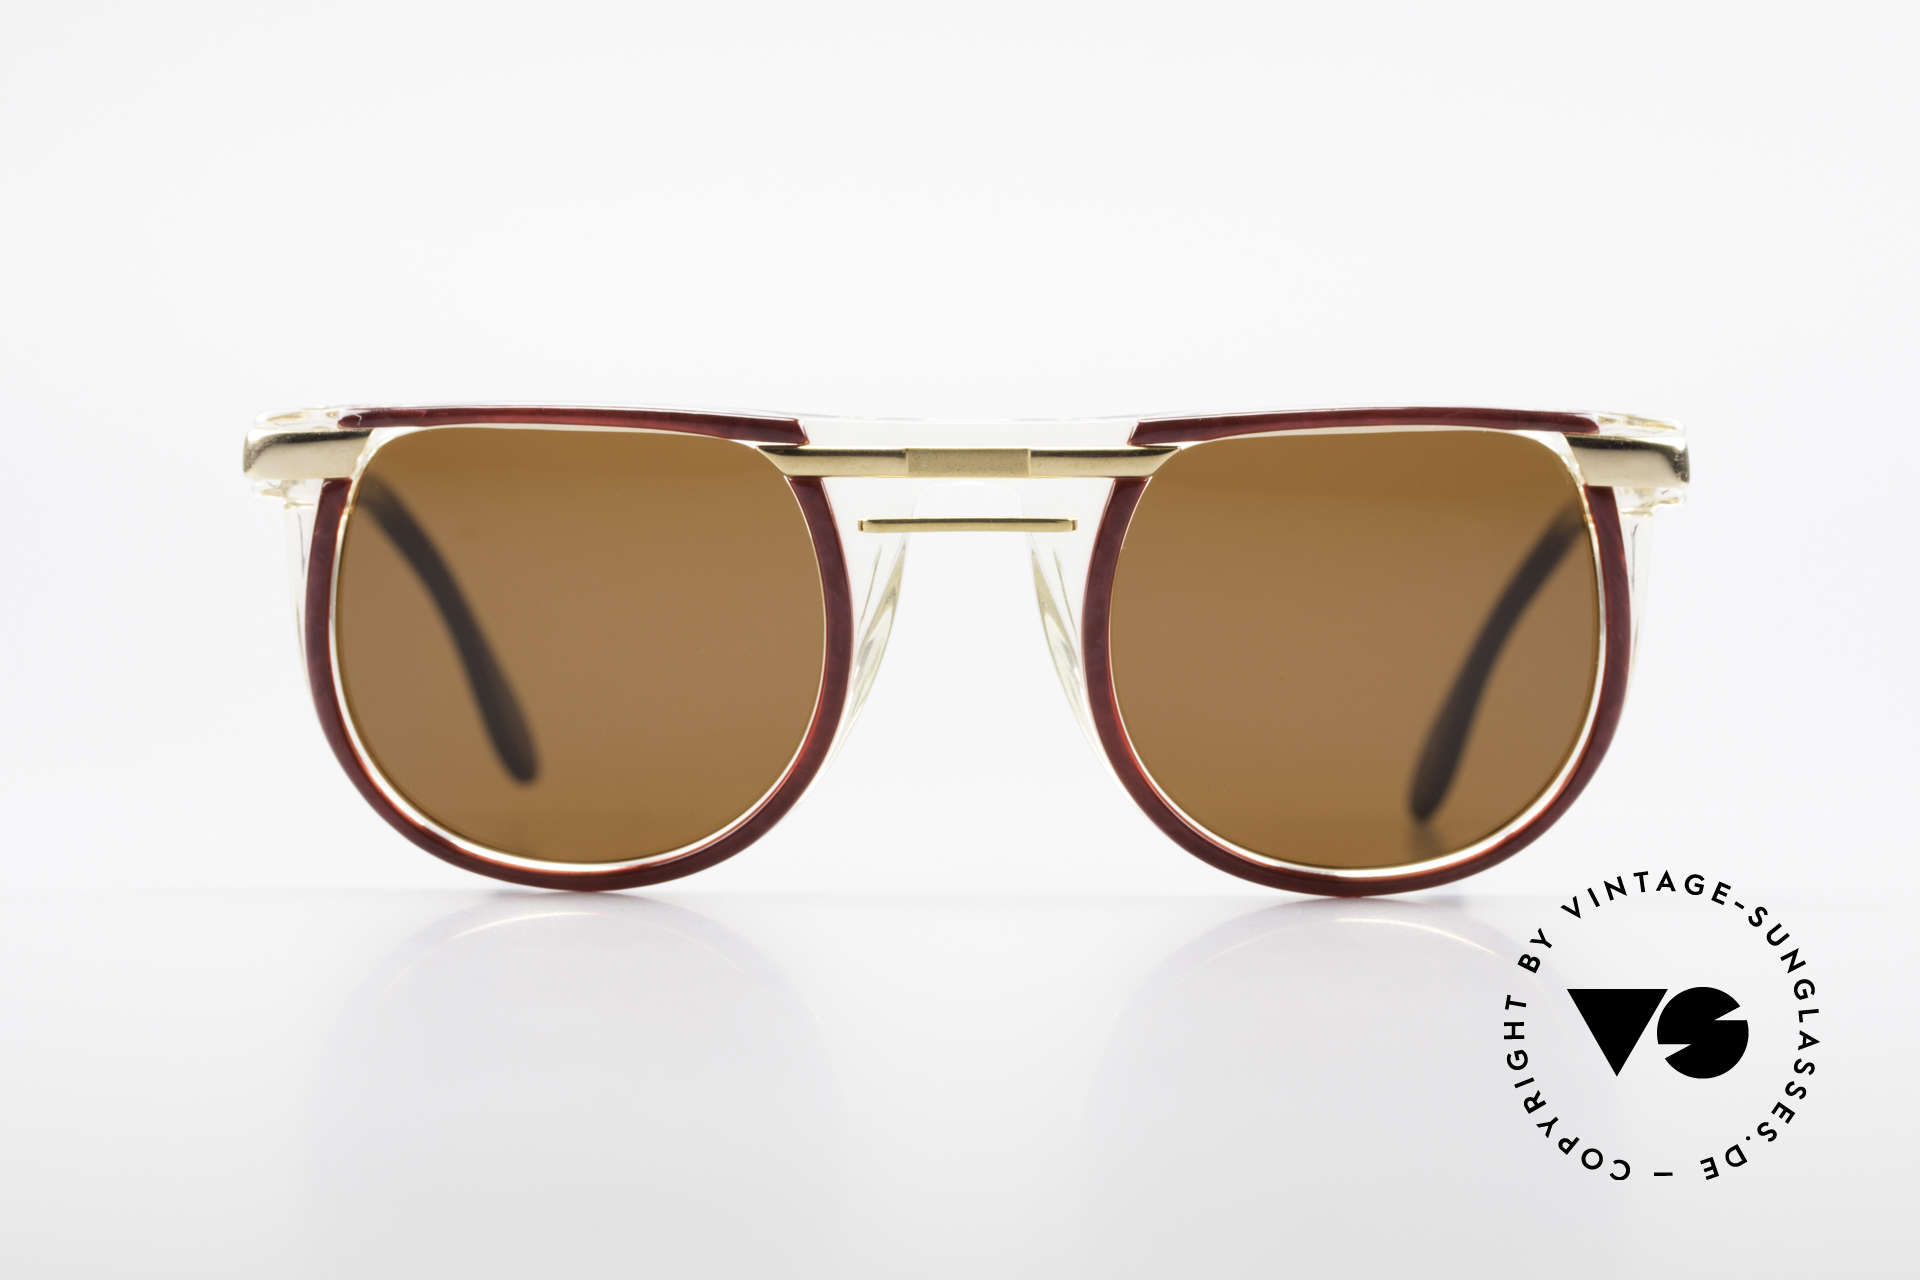 Cazal 647 90's Vintage Designer Shades, extraordinary model with terrific frame pattern, Made for Men and Women